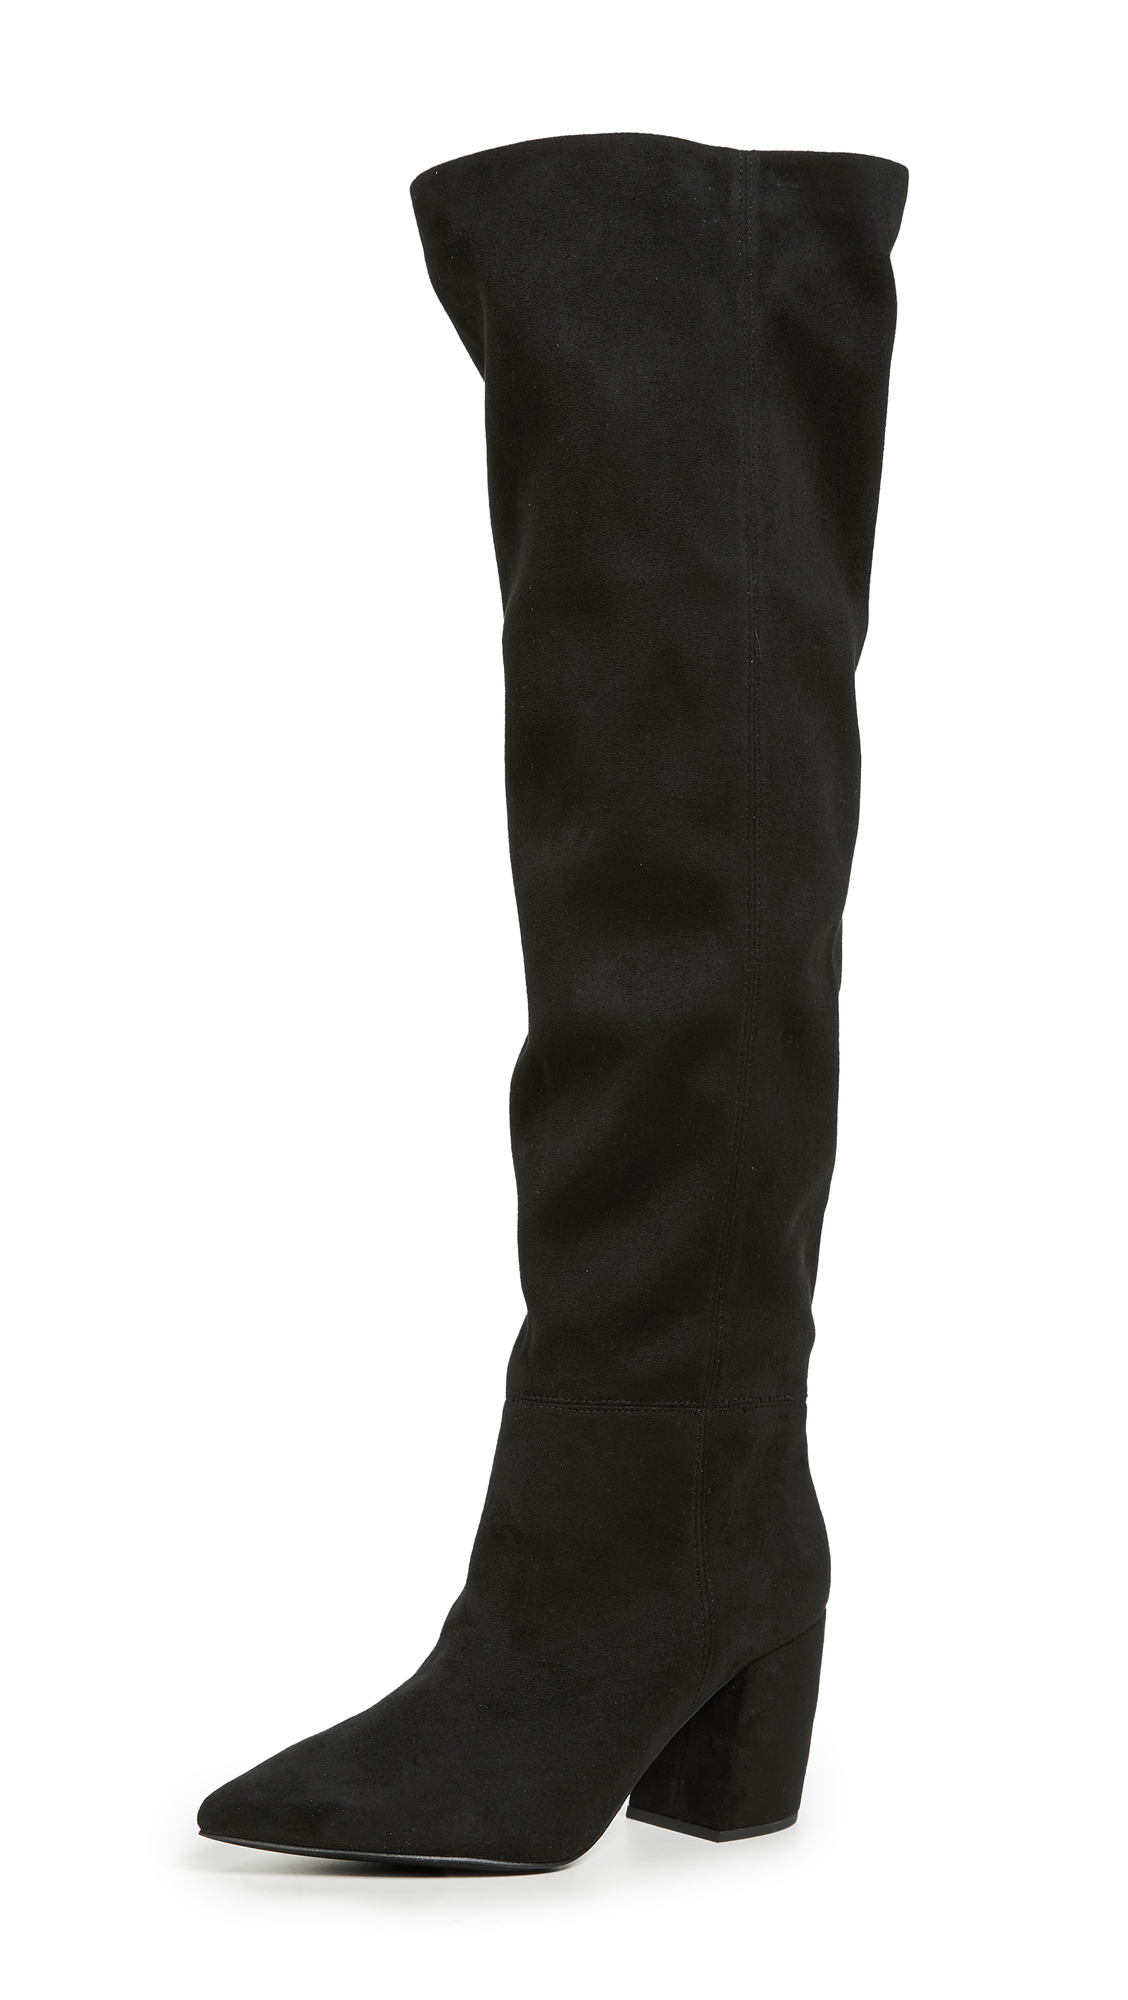 Jeffrey Campbell Final Slouchy Boots - Black